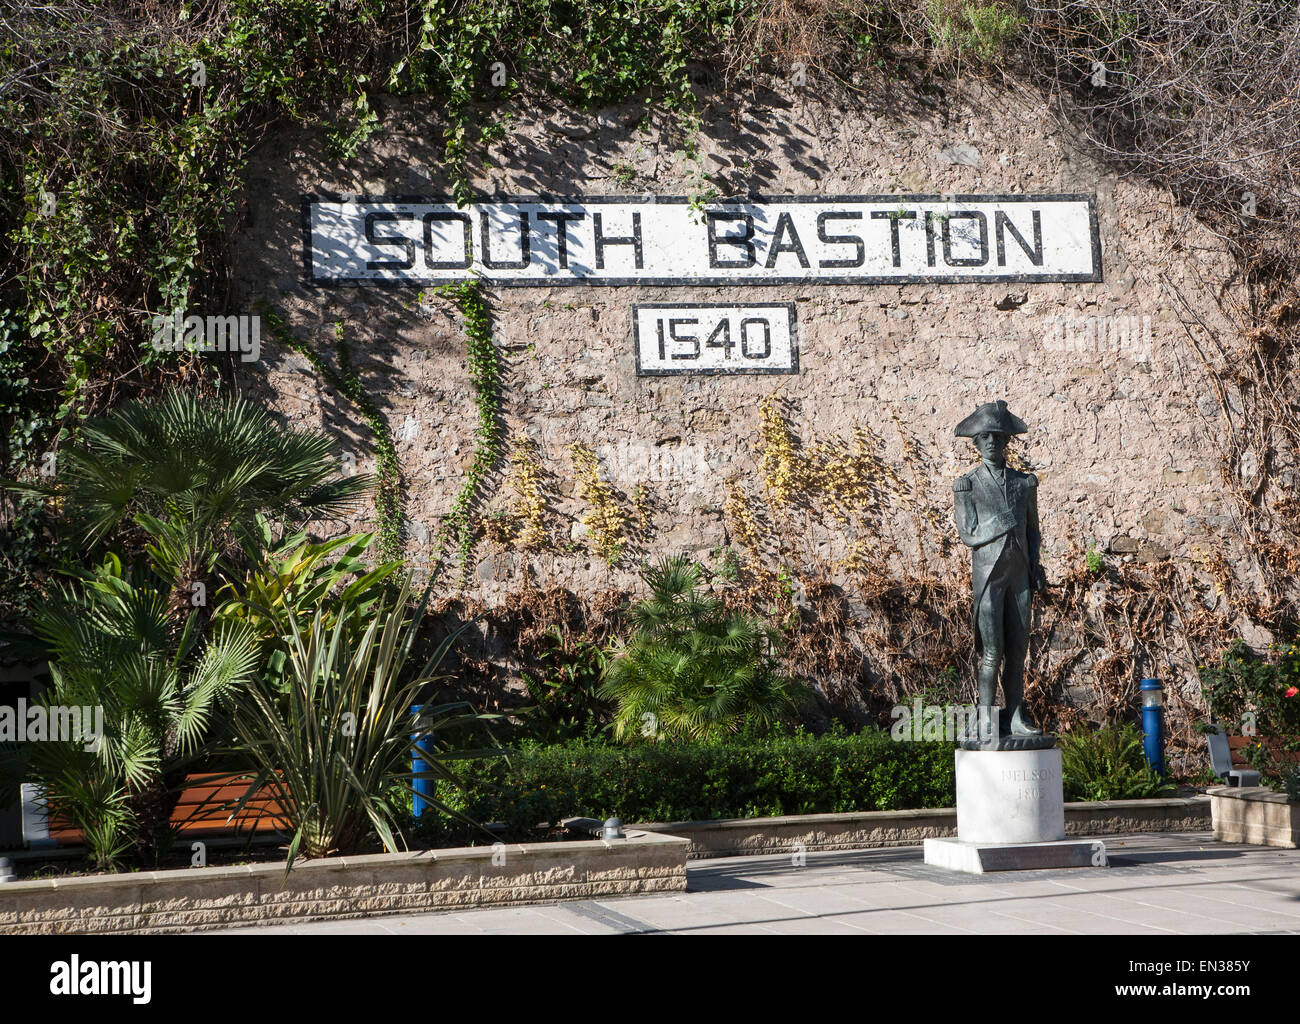 Statue of Admiral Lord Nelson at South Bastion, Gibraltar, British terroritory in southern Europe - Stock Image